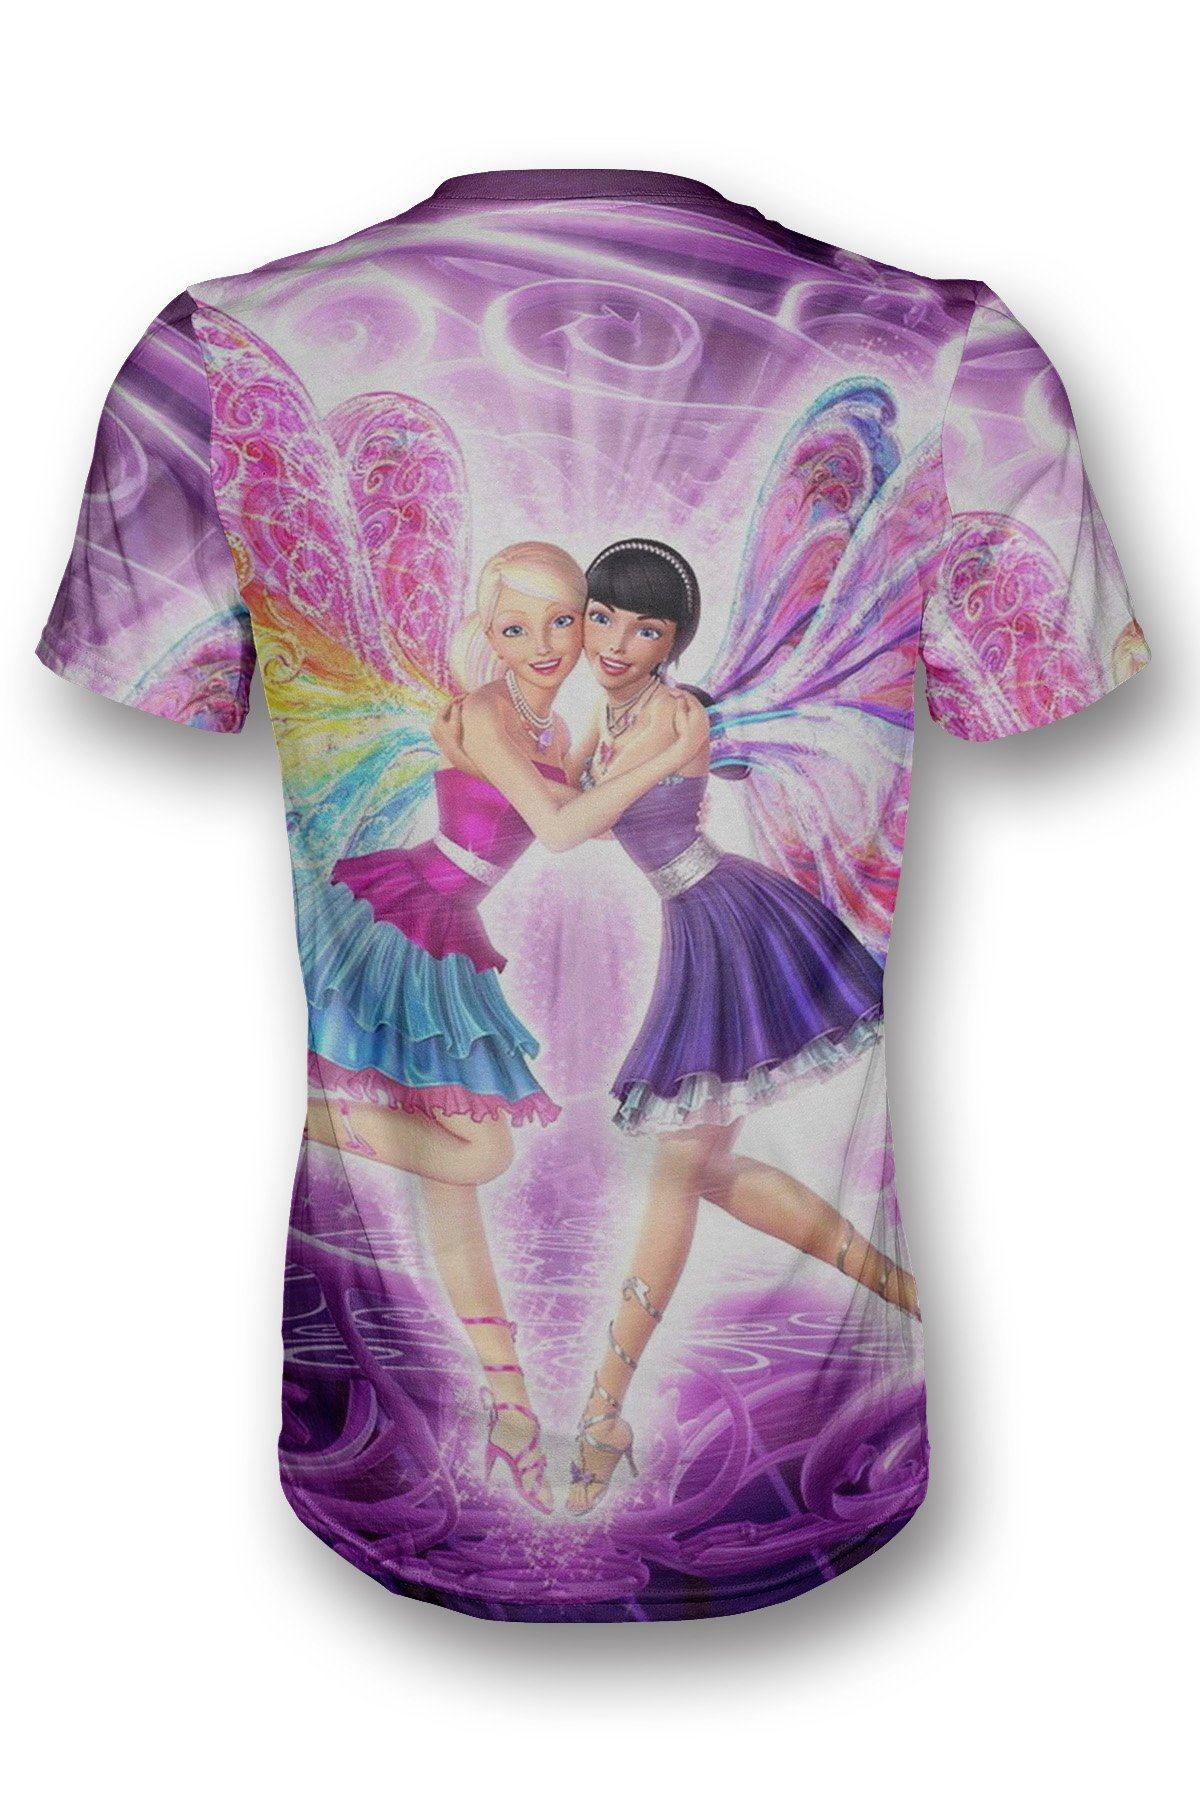 Barbie Fairies T-shirt